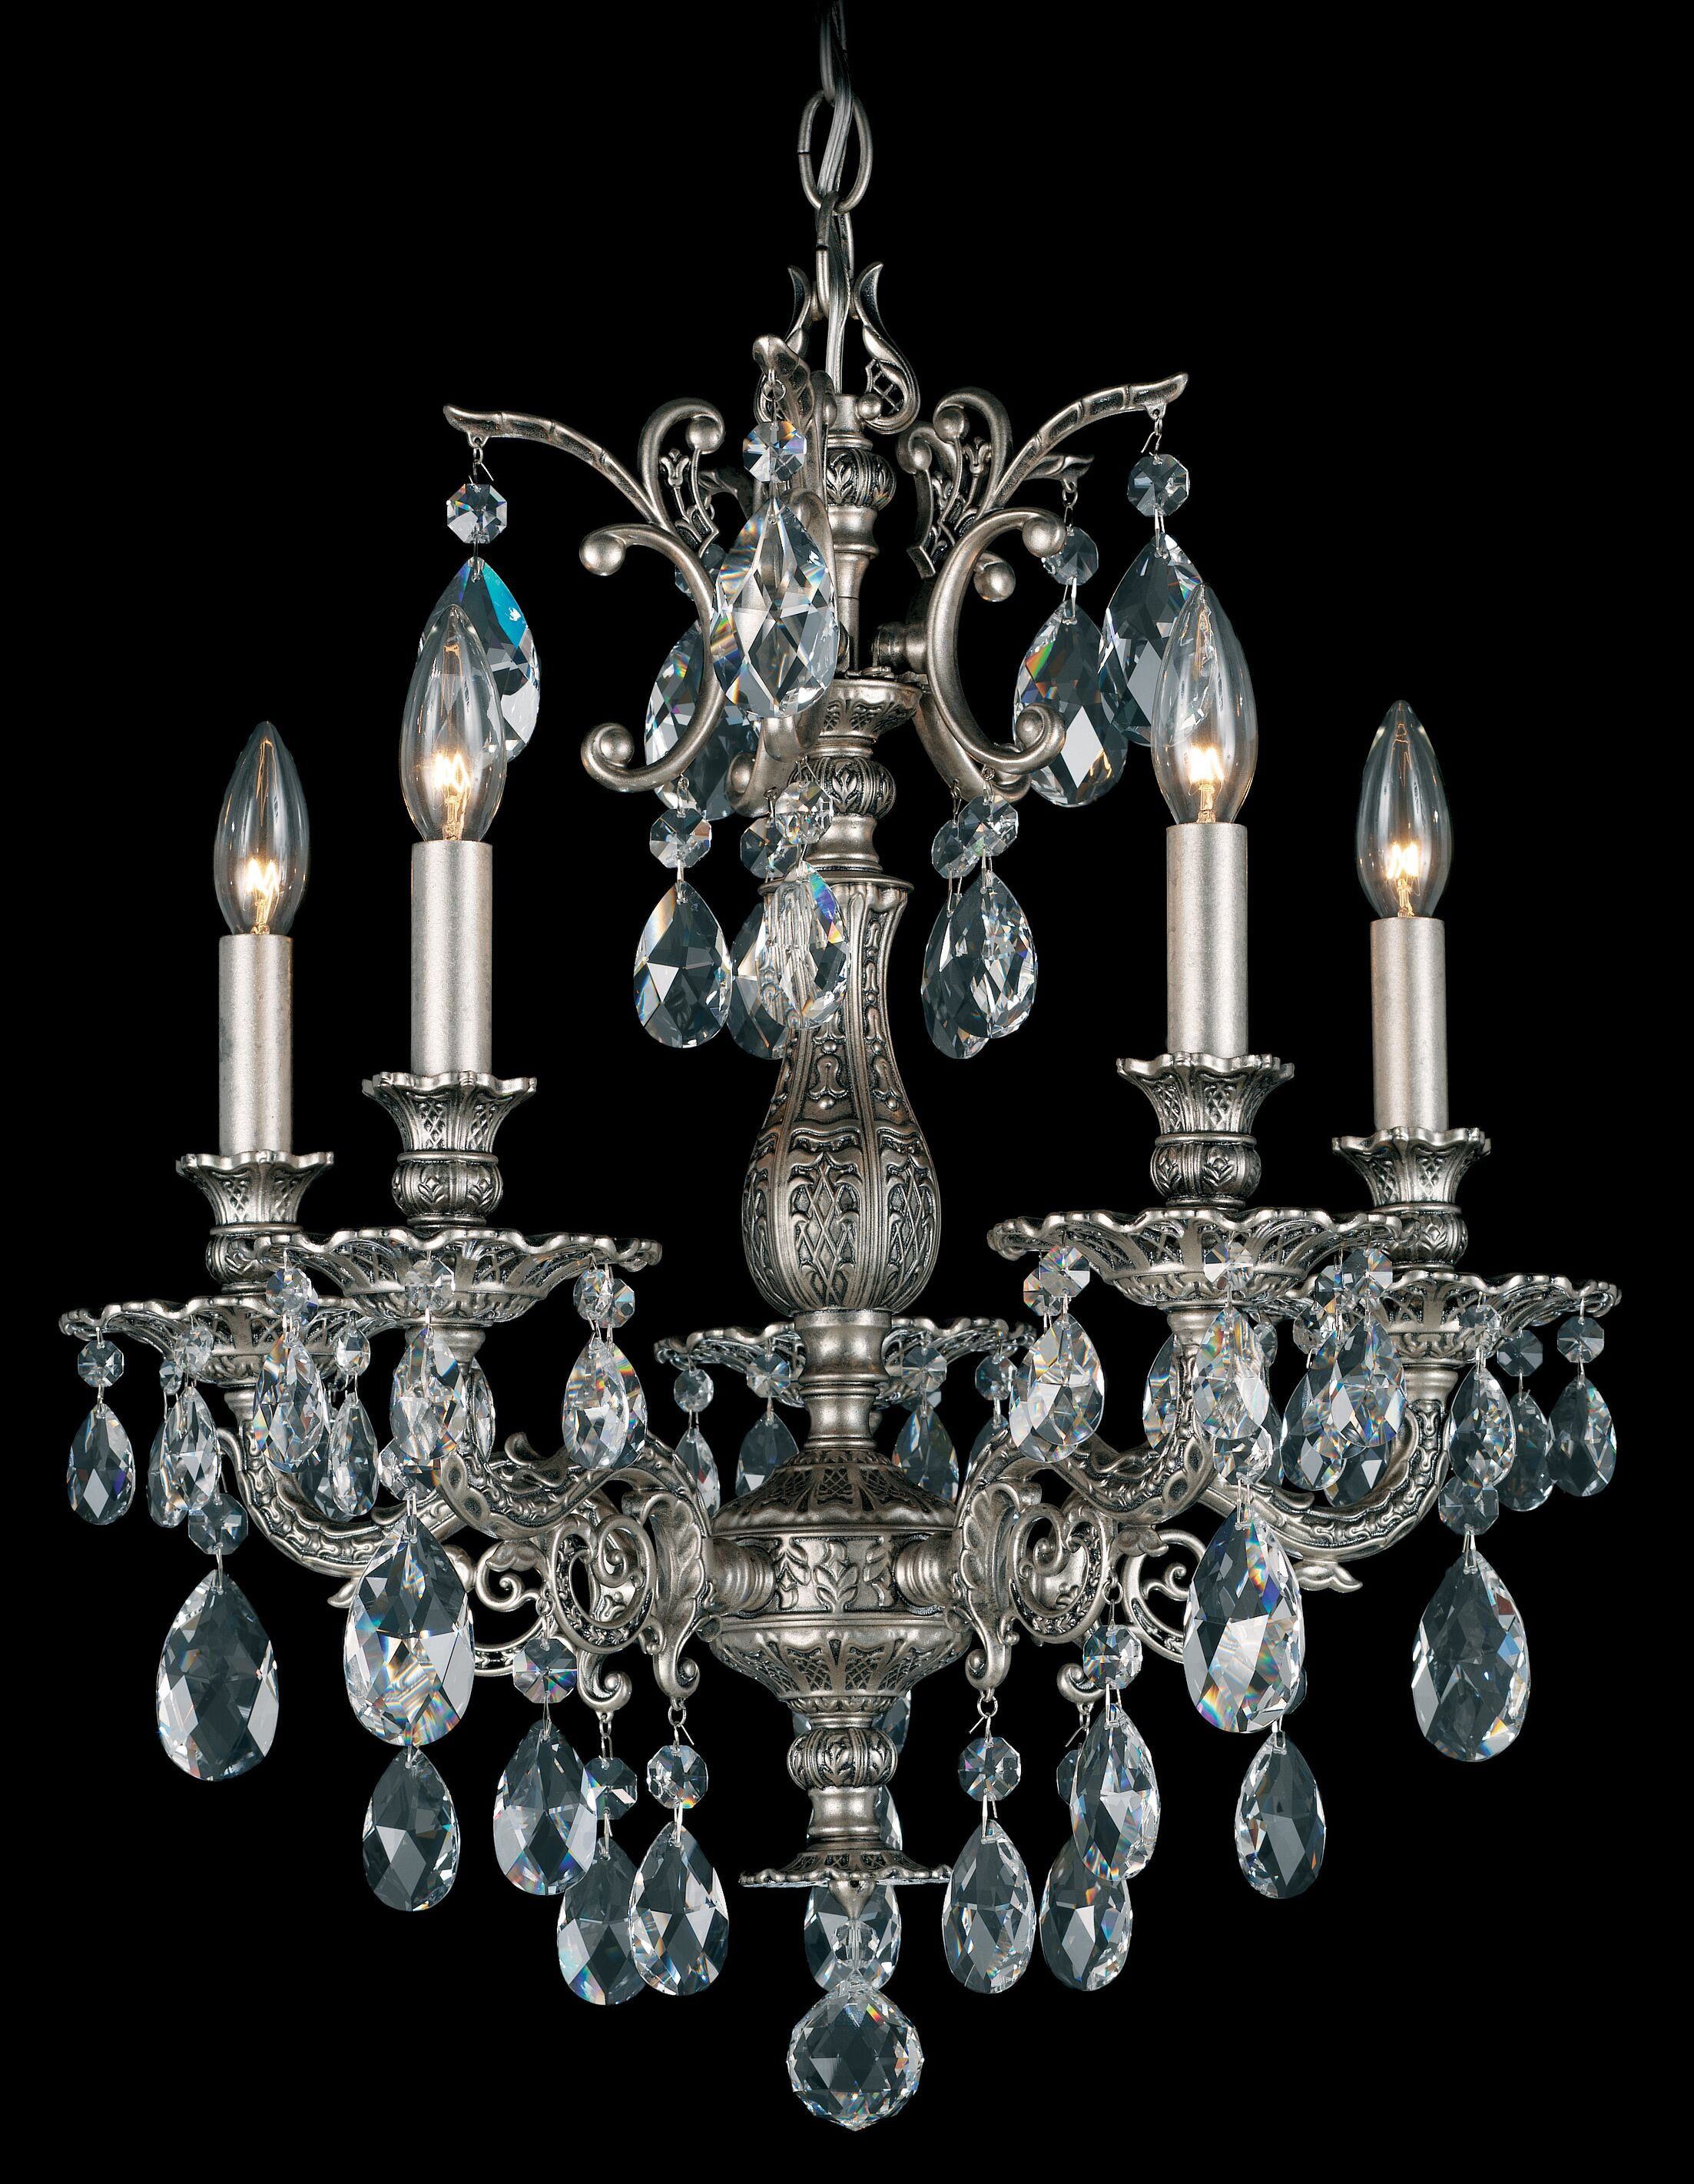 Milano 5-Light Chandelier Finish: Antique Silver, Crystal Color: Strass Clear